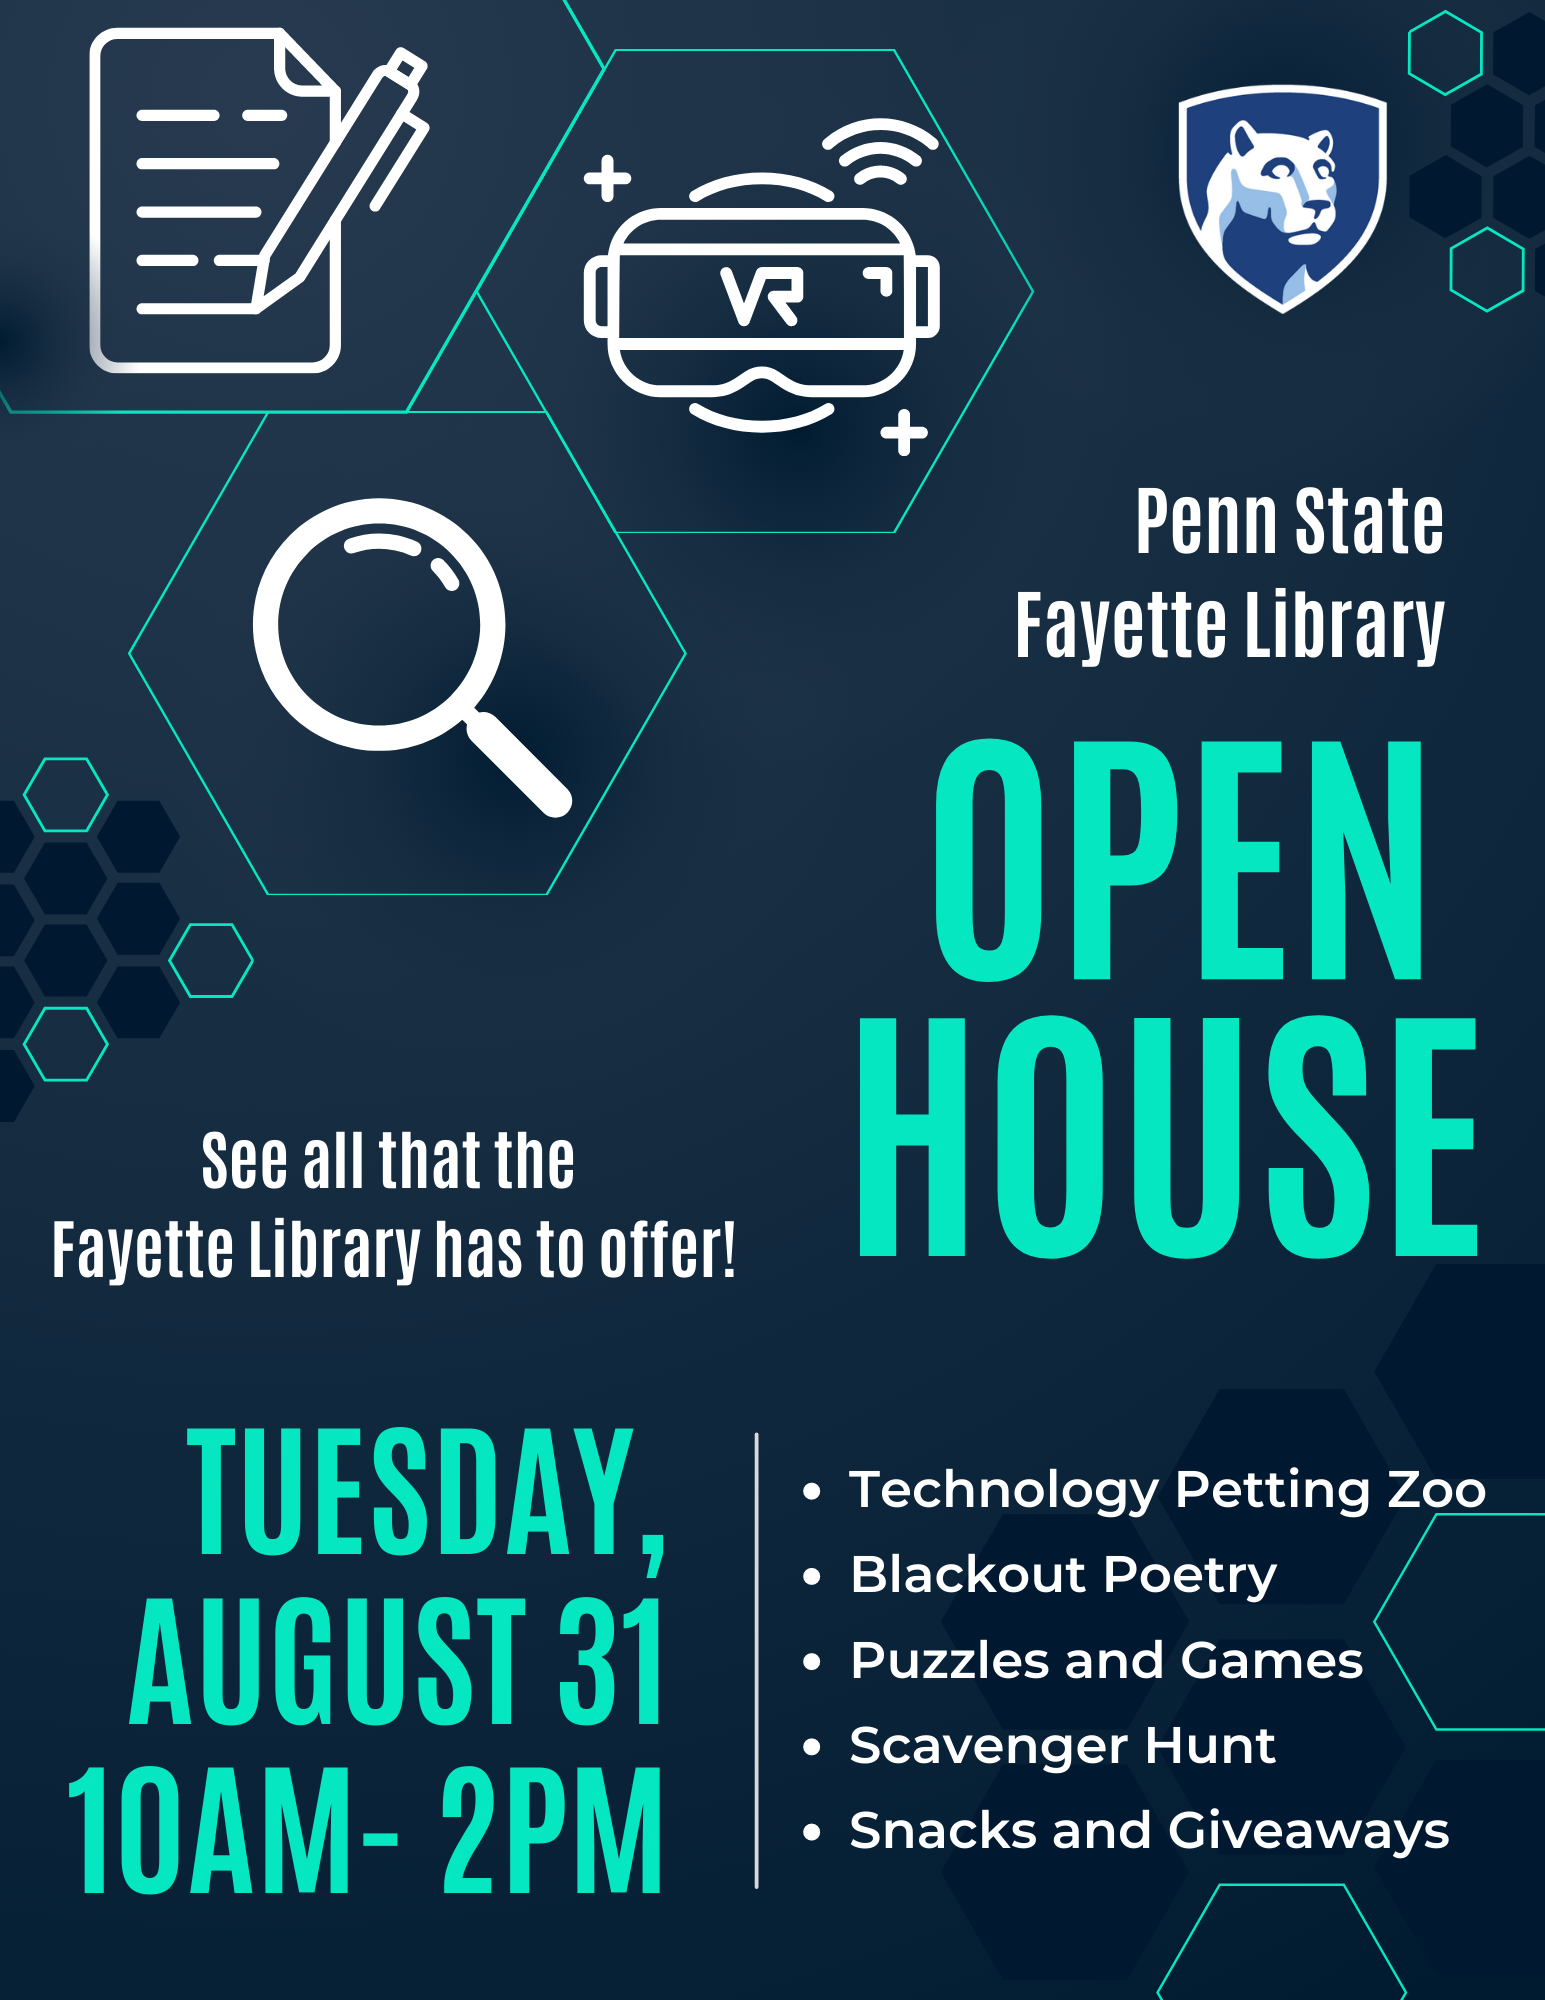 Flyer for the Fall 2021 Library Open House Event on Tuesday, August 31 from 10:00 am to 2:00 pm